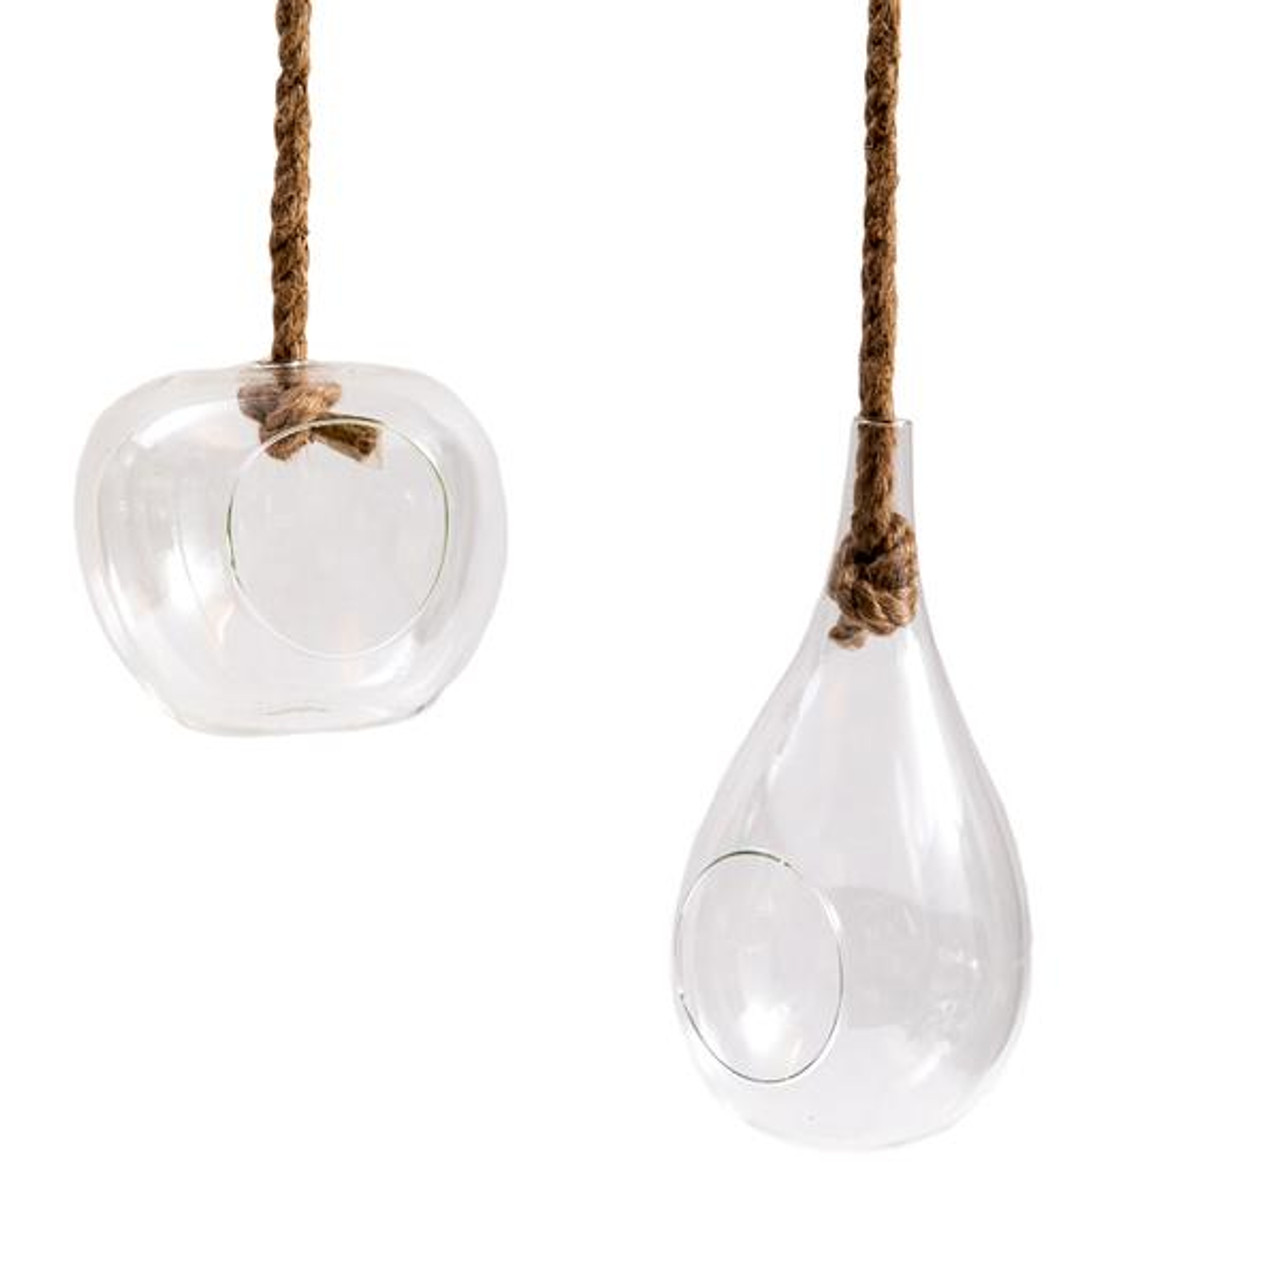 dom and teardrop shaped hanging terrarium